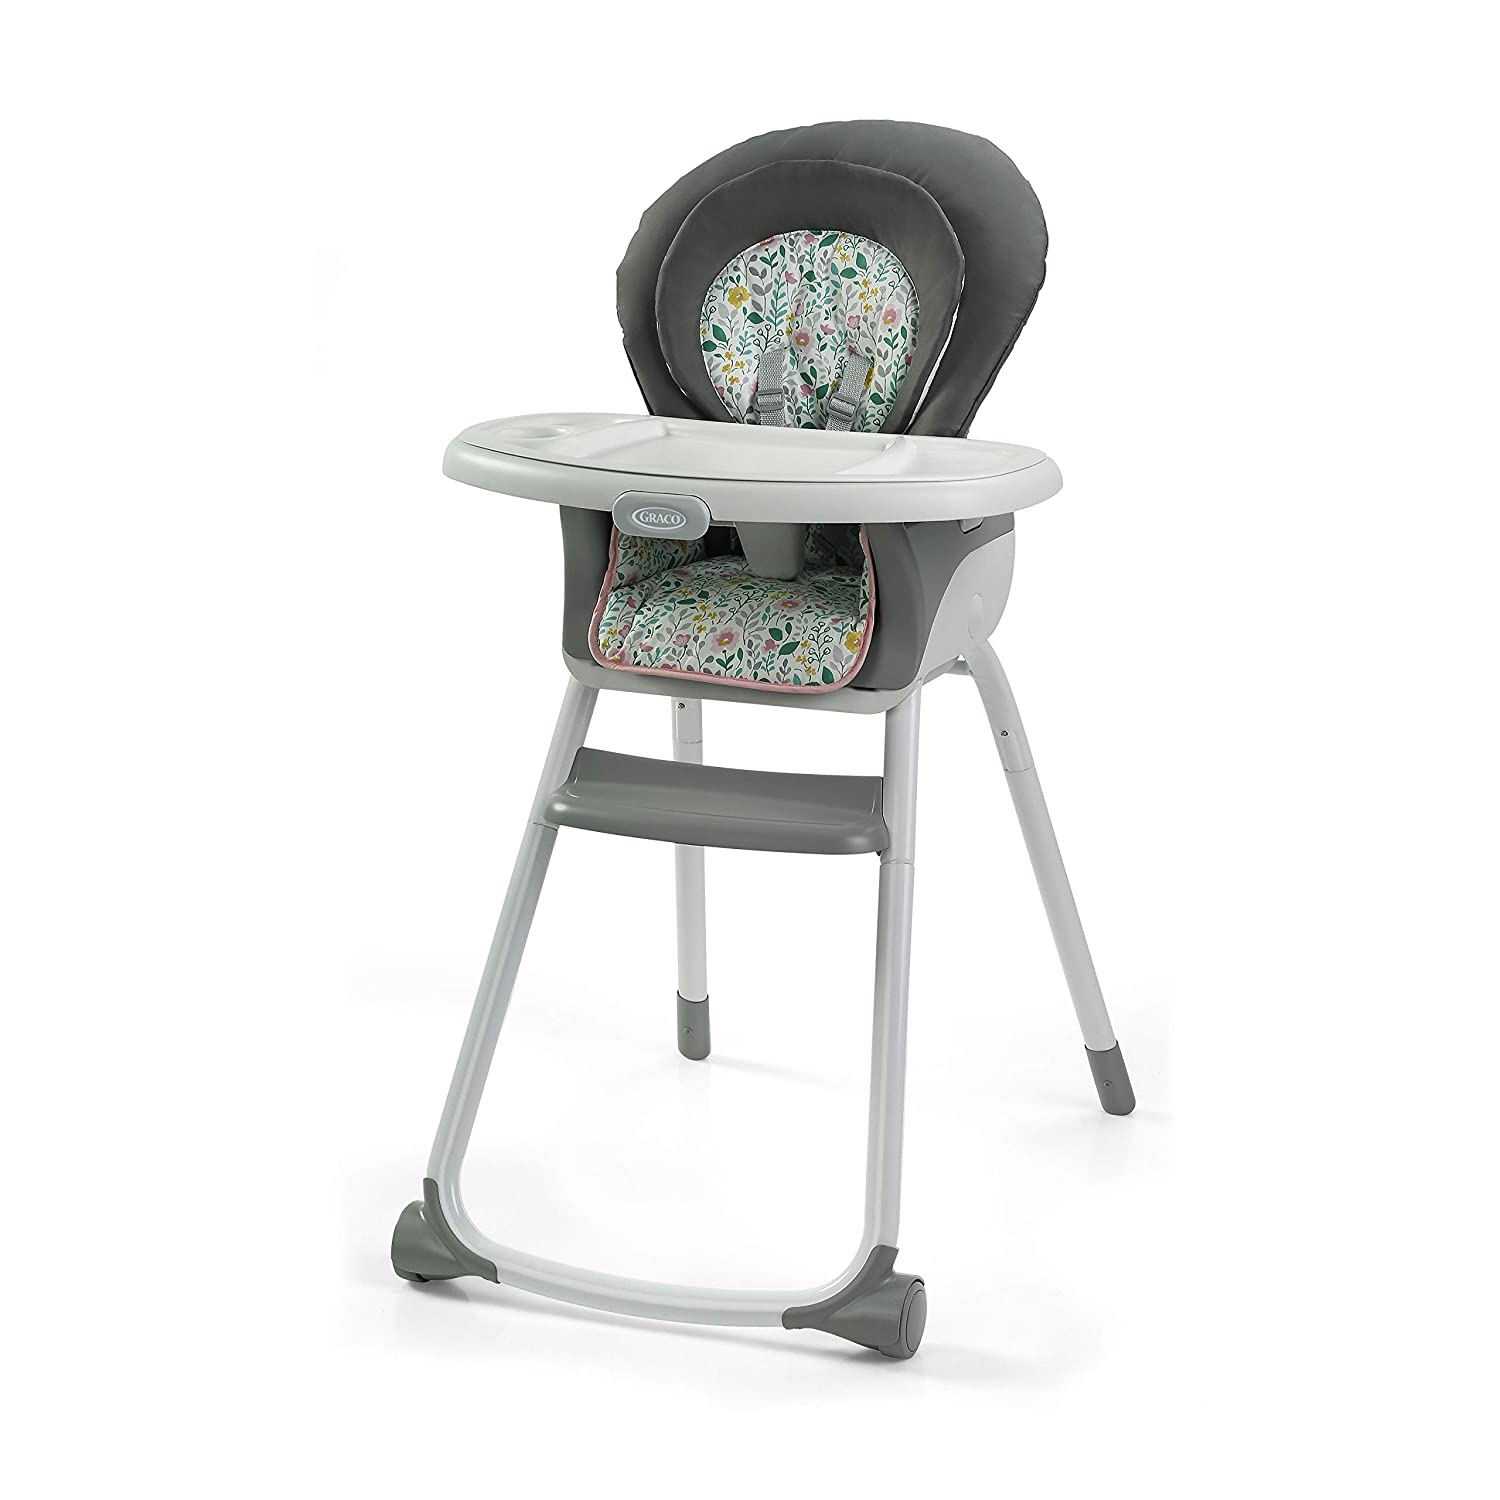 Converts to Dining Booster Seat Graco Made2Grow 6 in 1 High Chair Youth Stool and More Tasha